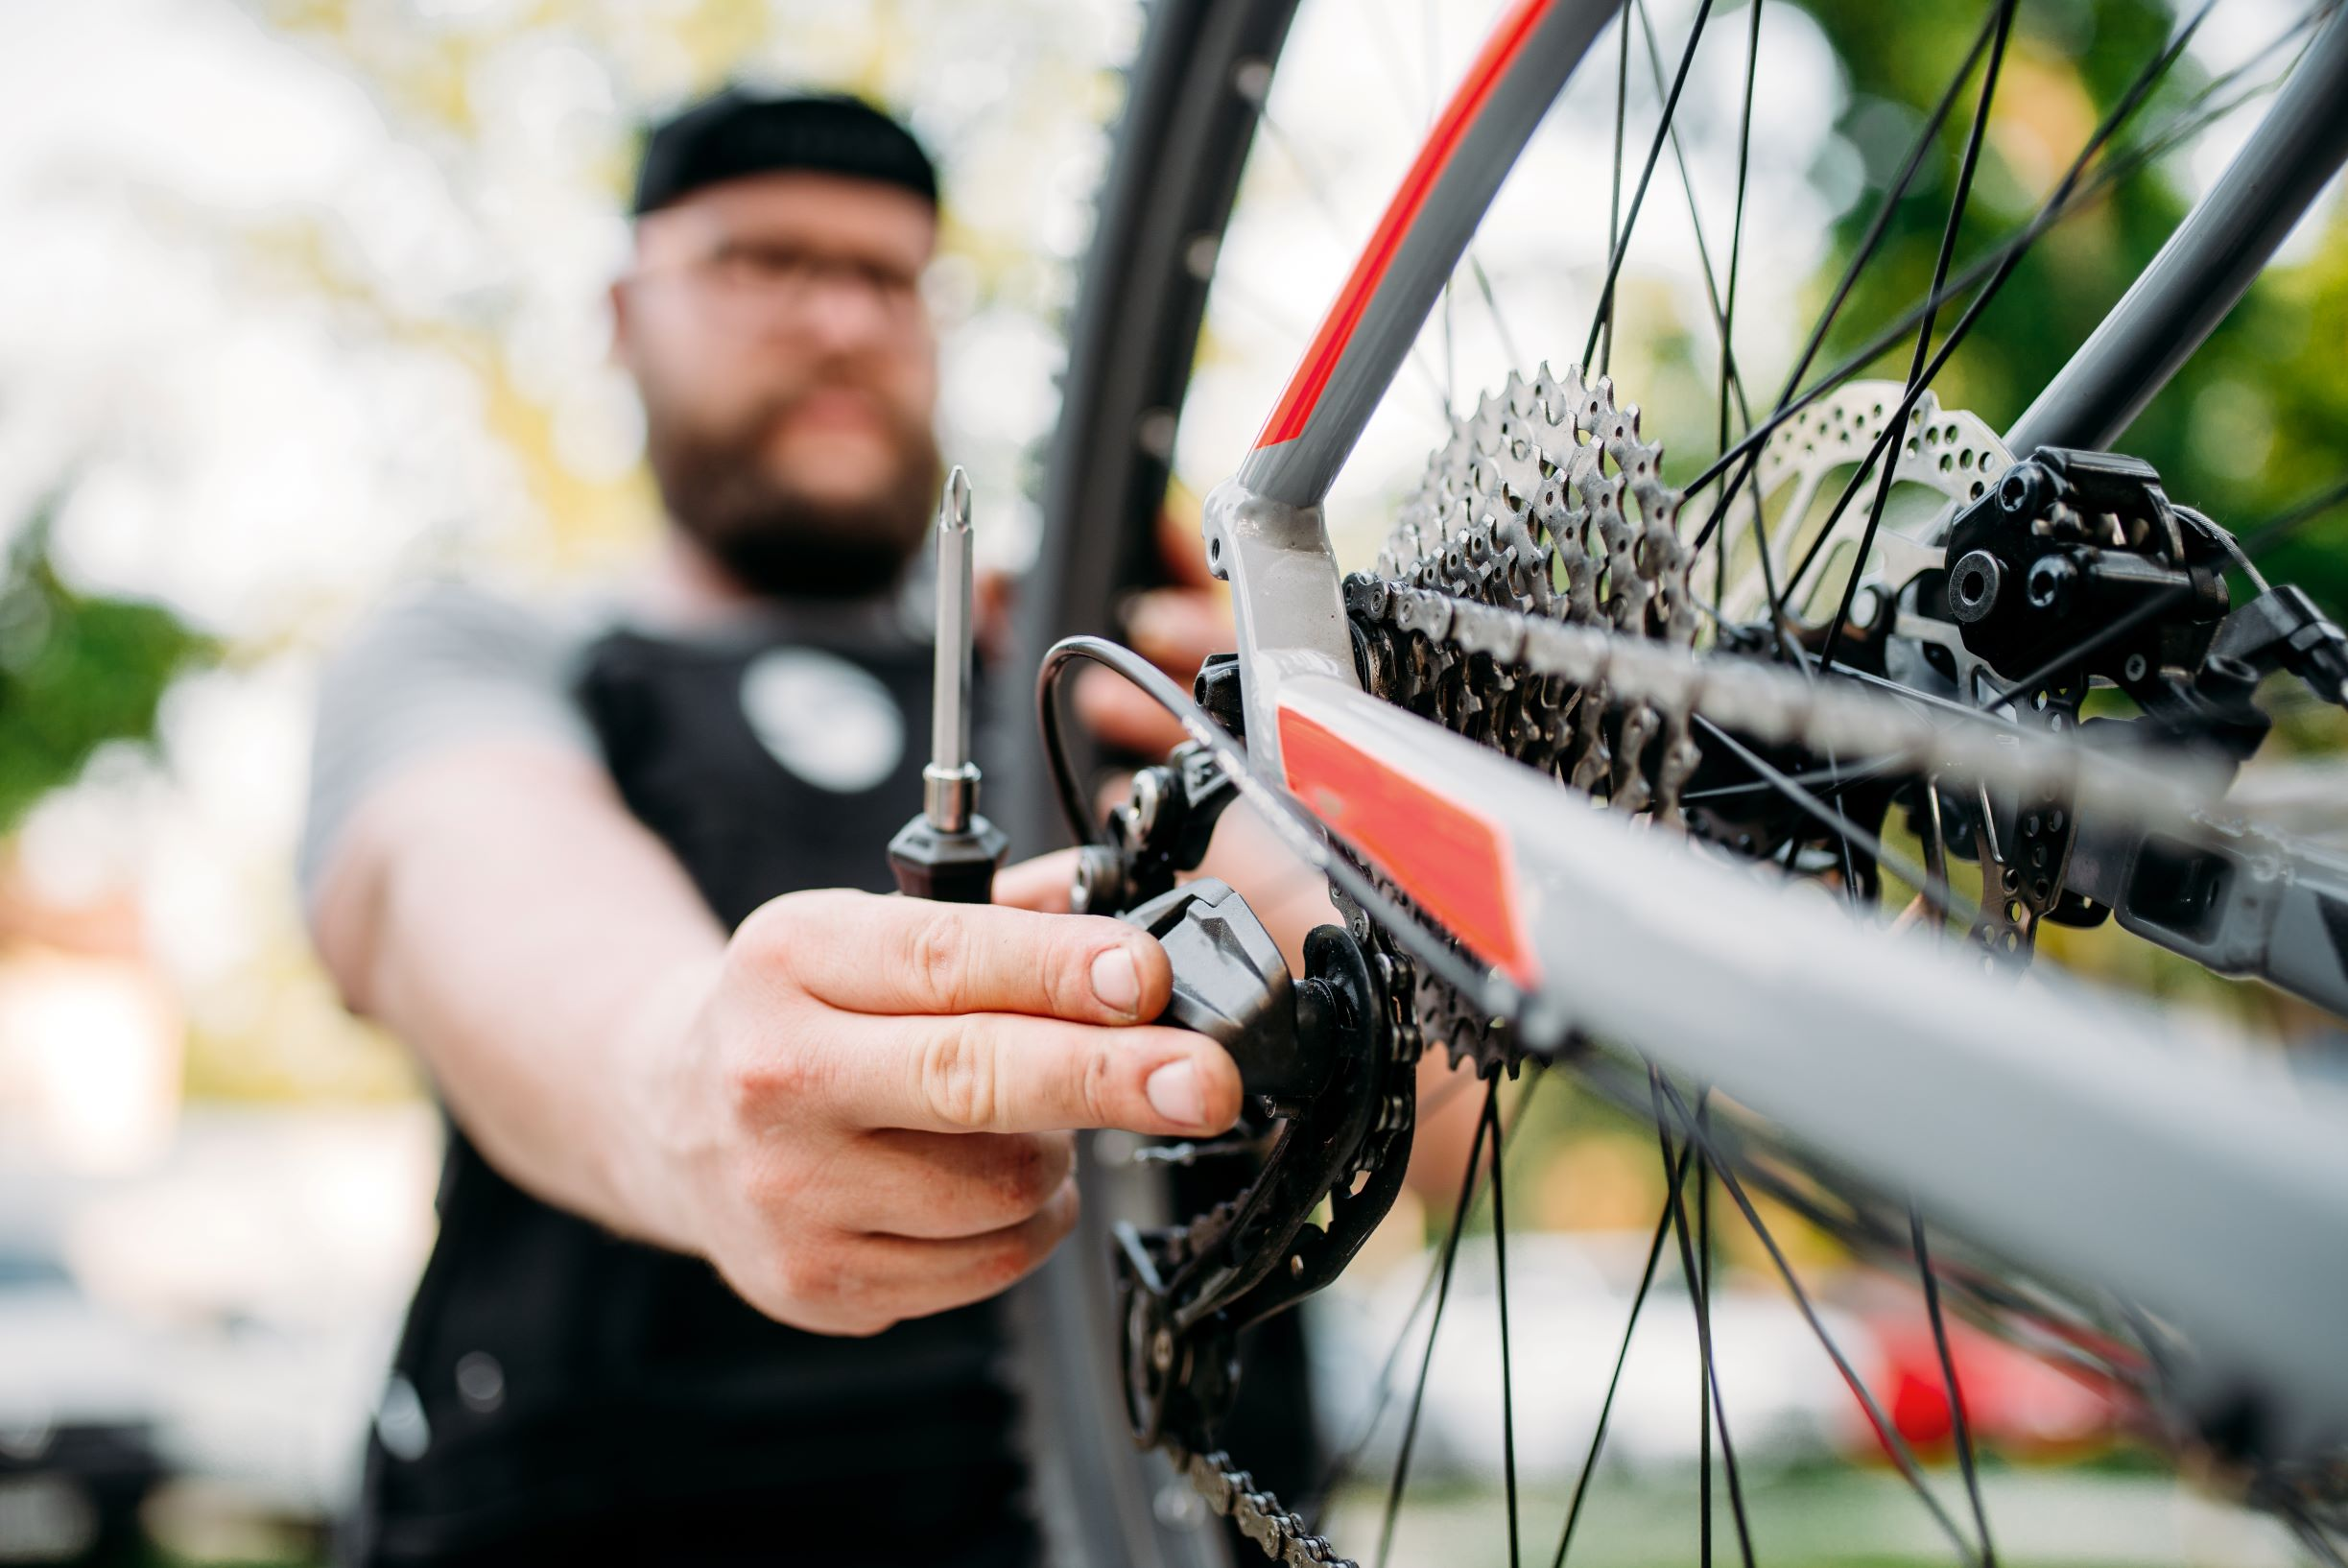 Get bike parts when you need them!  Get Bike-Link today!